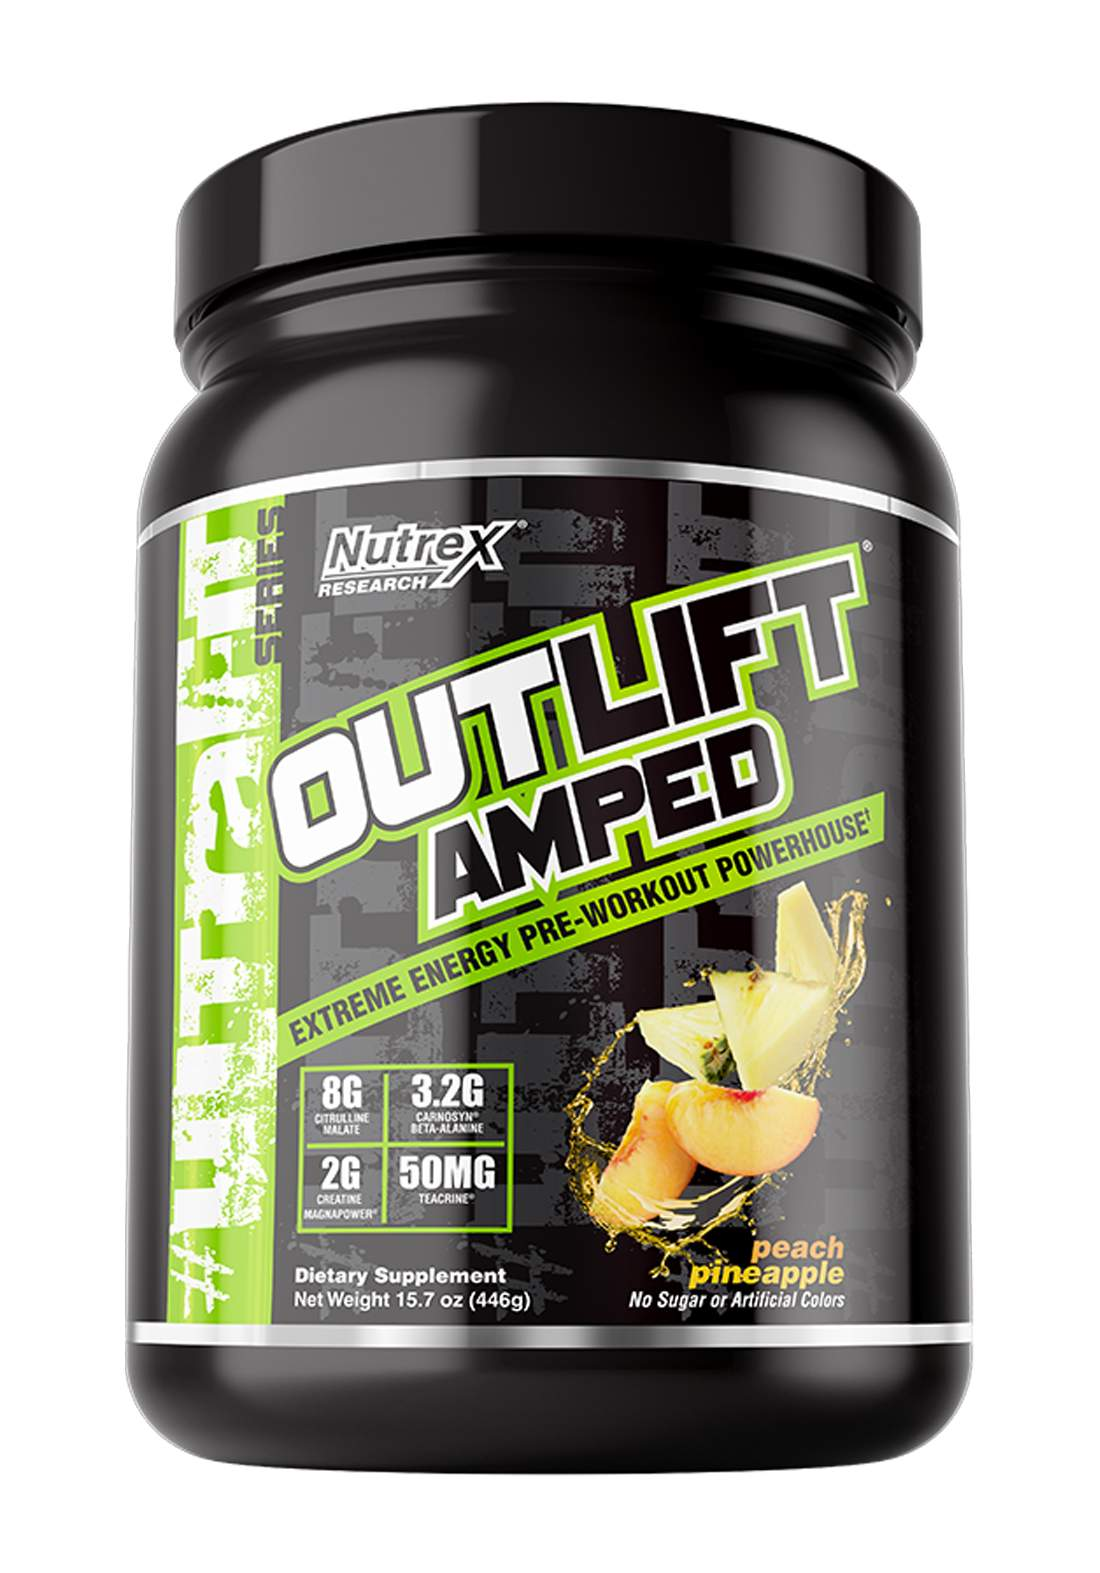 Nutrex Outlift Amped Extreme Energy Pre-Workout Peach Pineapple 20 Servings   مكمل غذائي